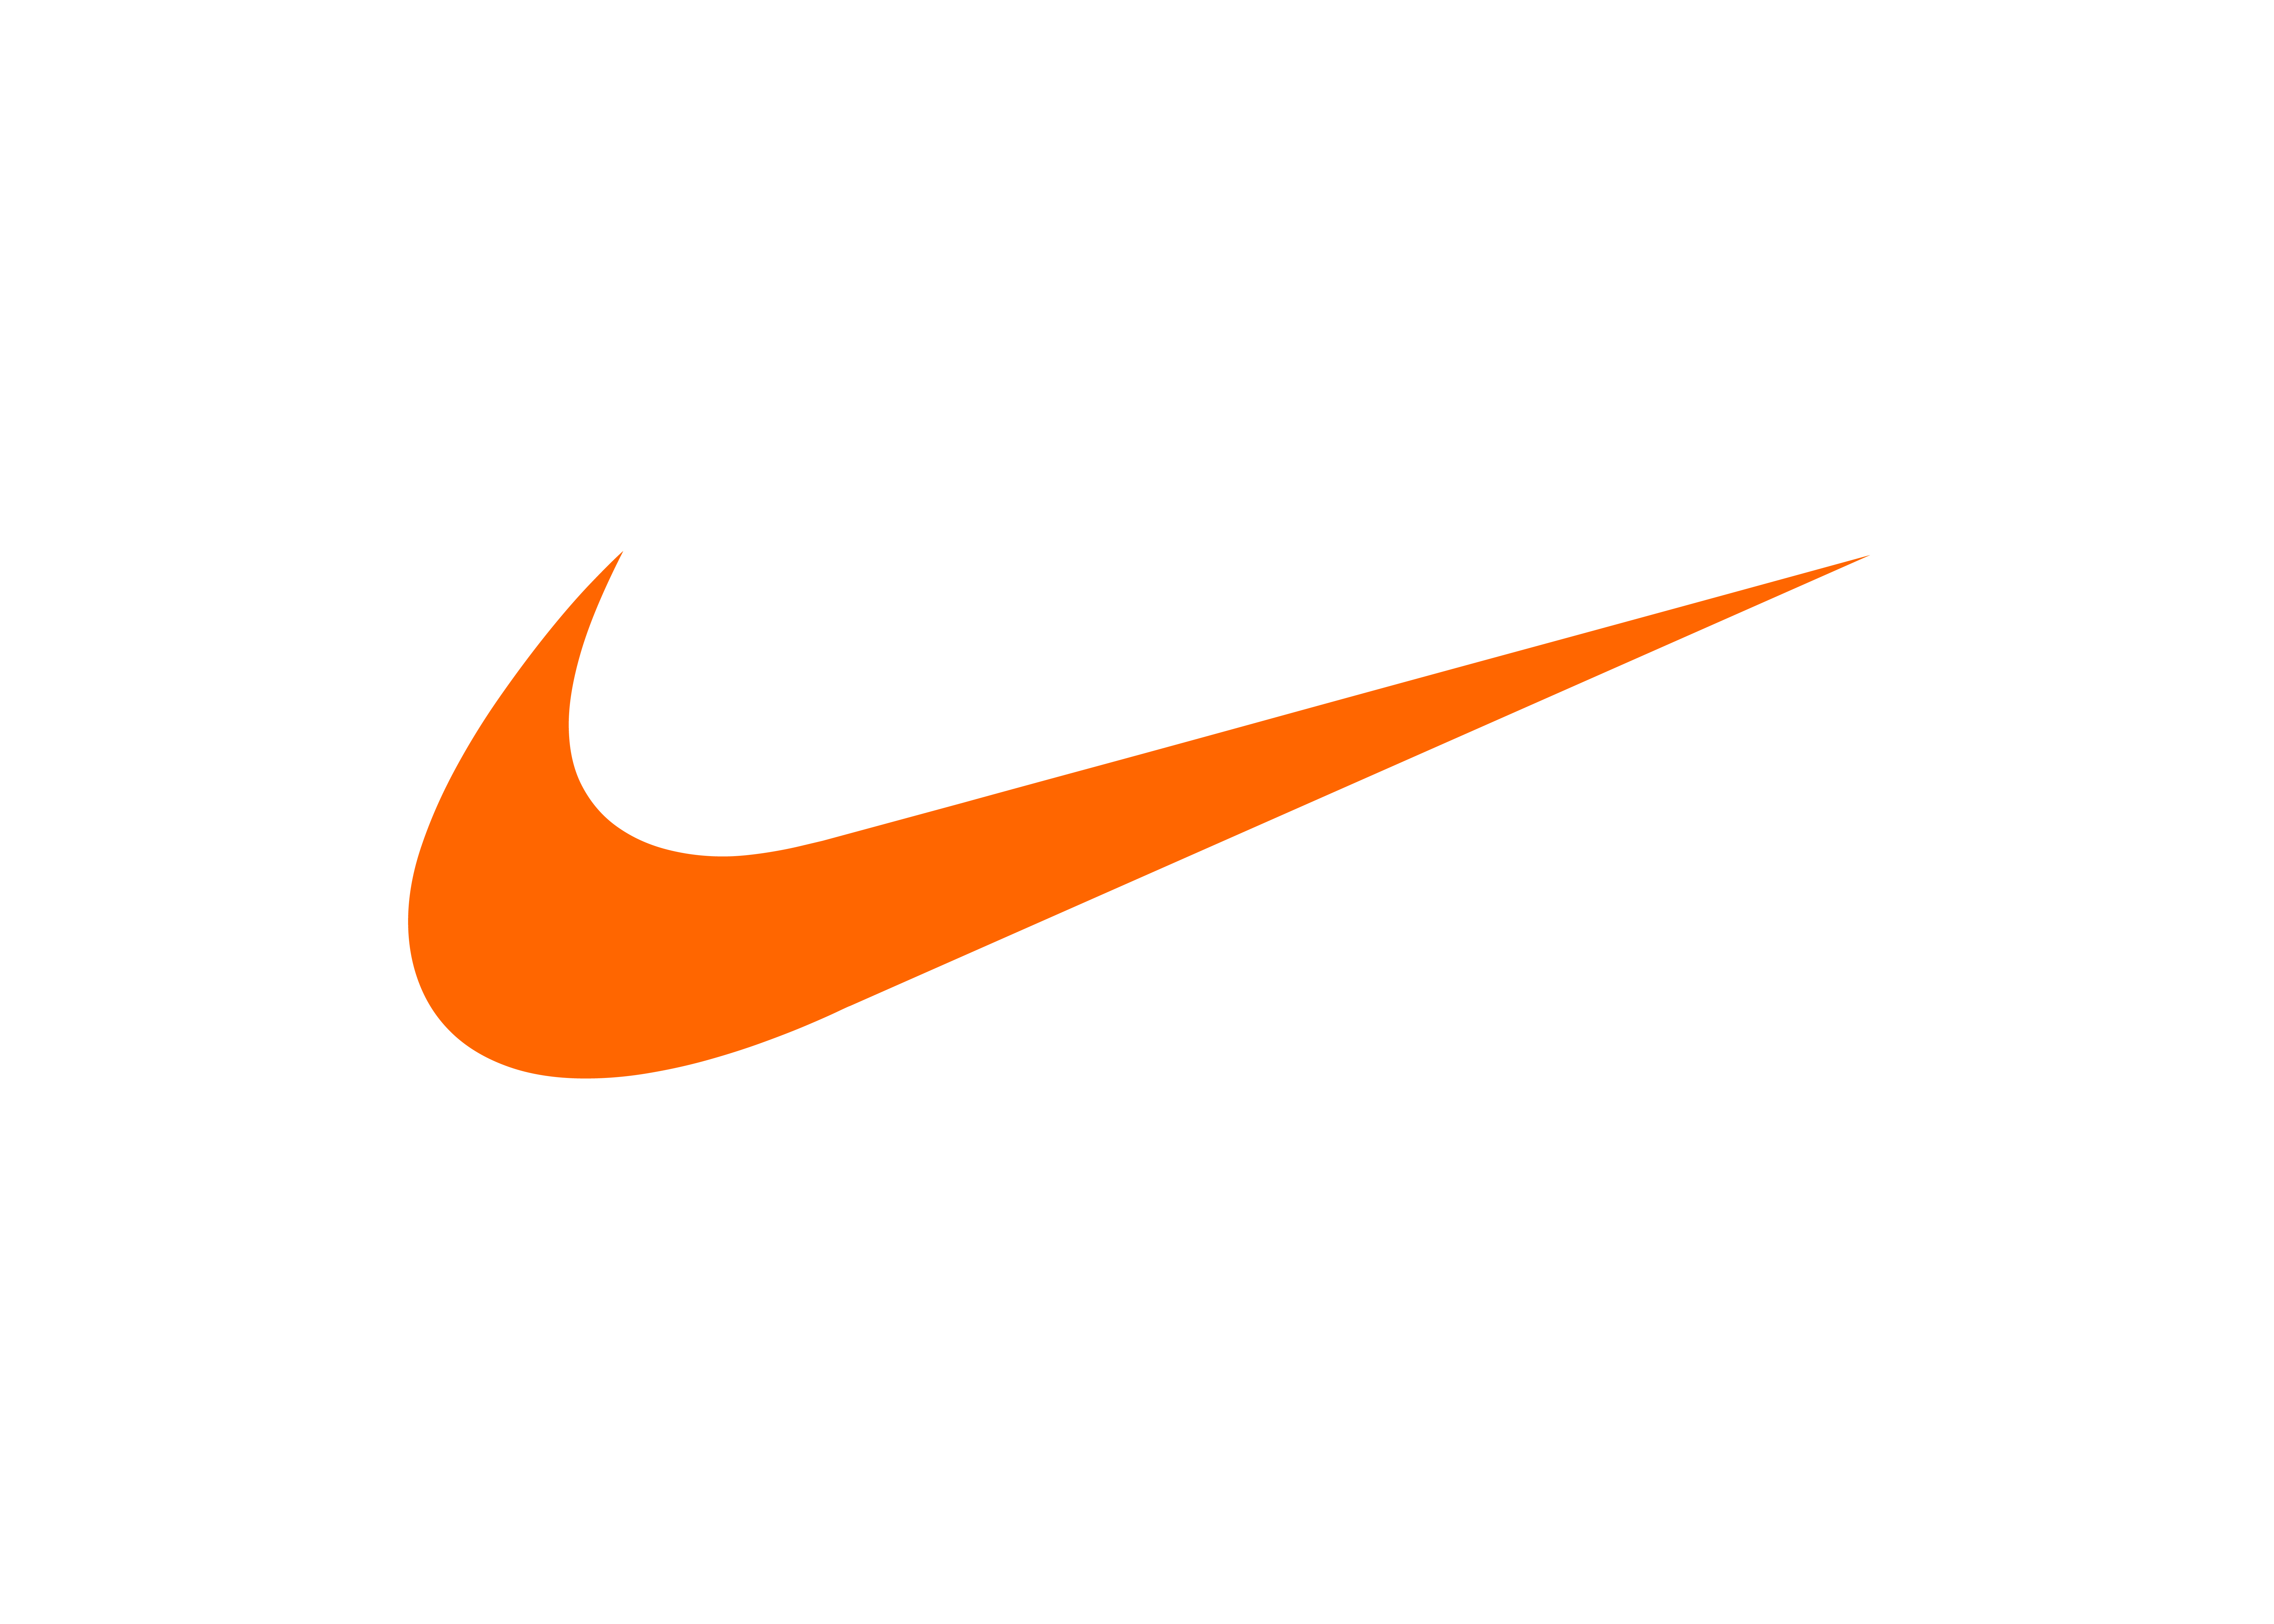 Free Nike Swoosh Png, Download Free Clip Art, Free Clip Art.